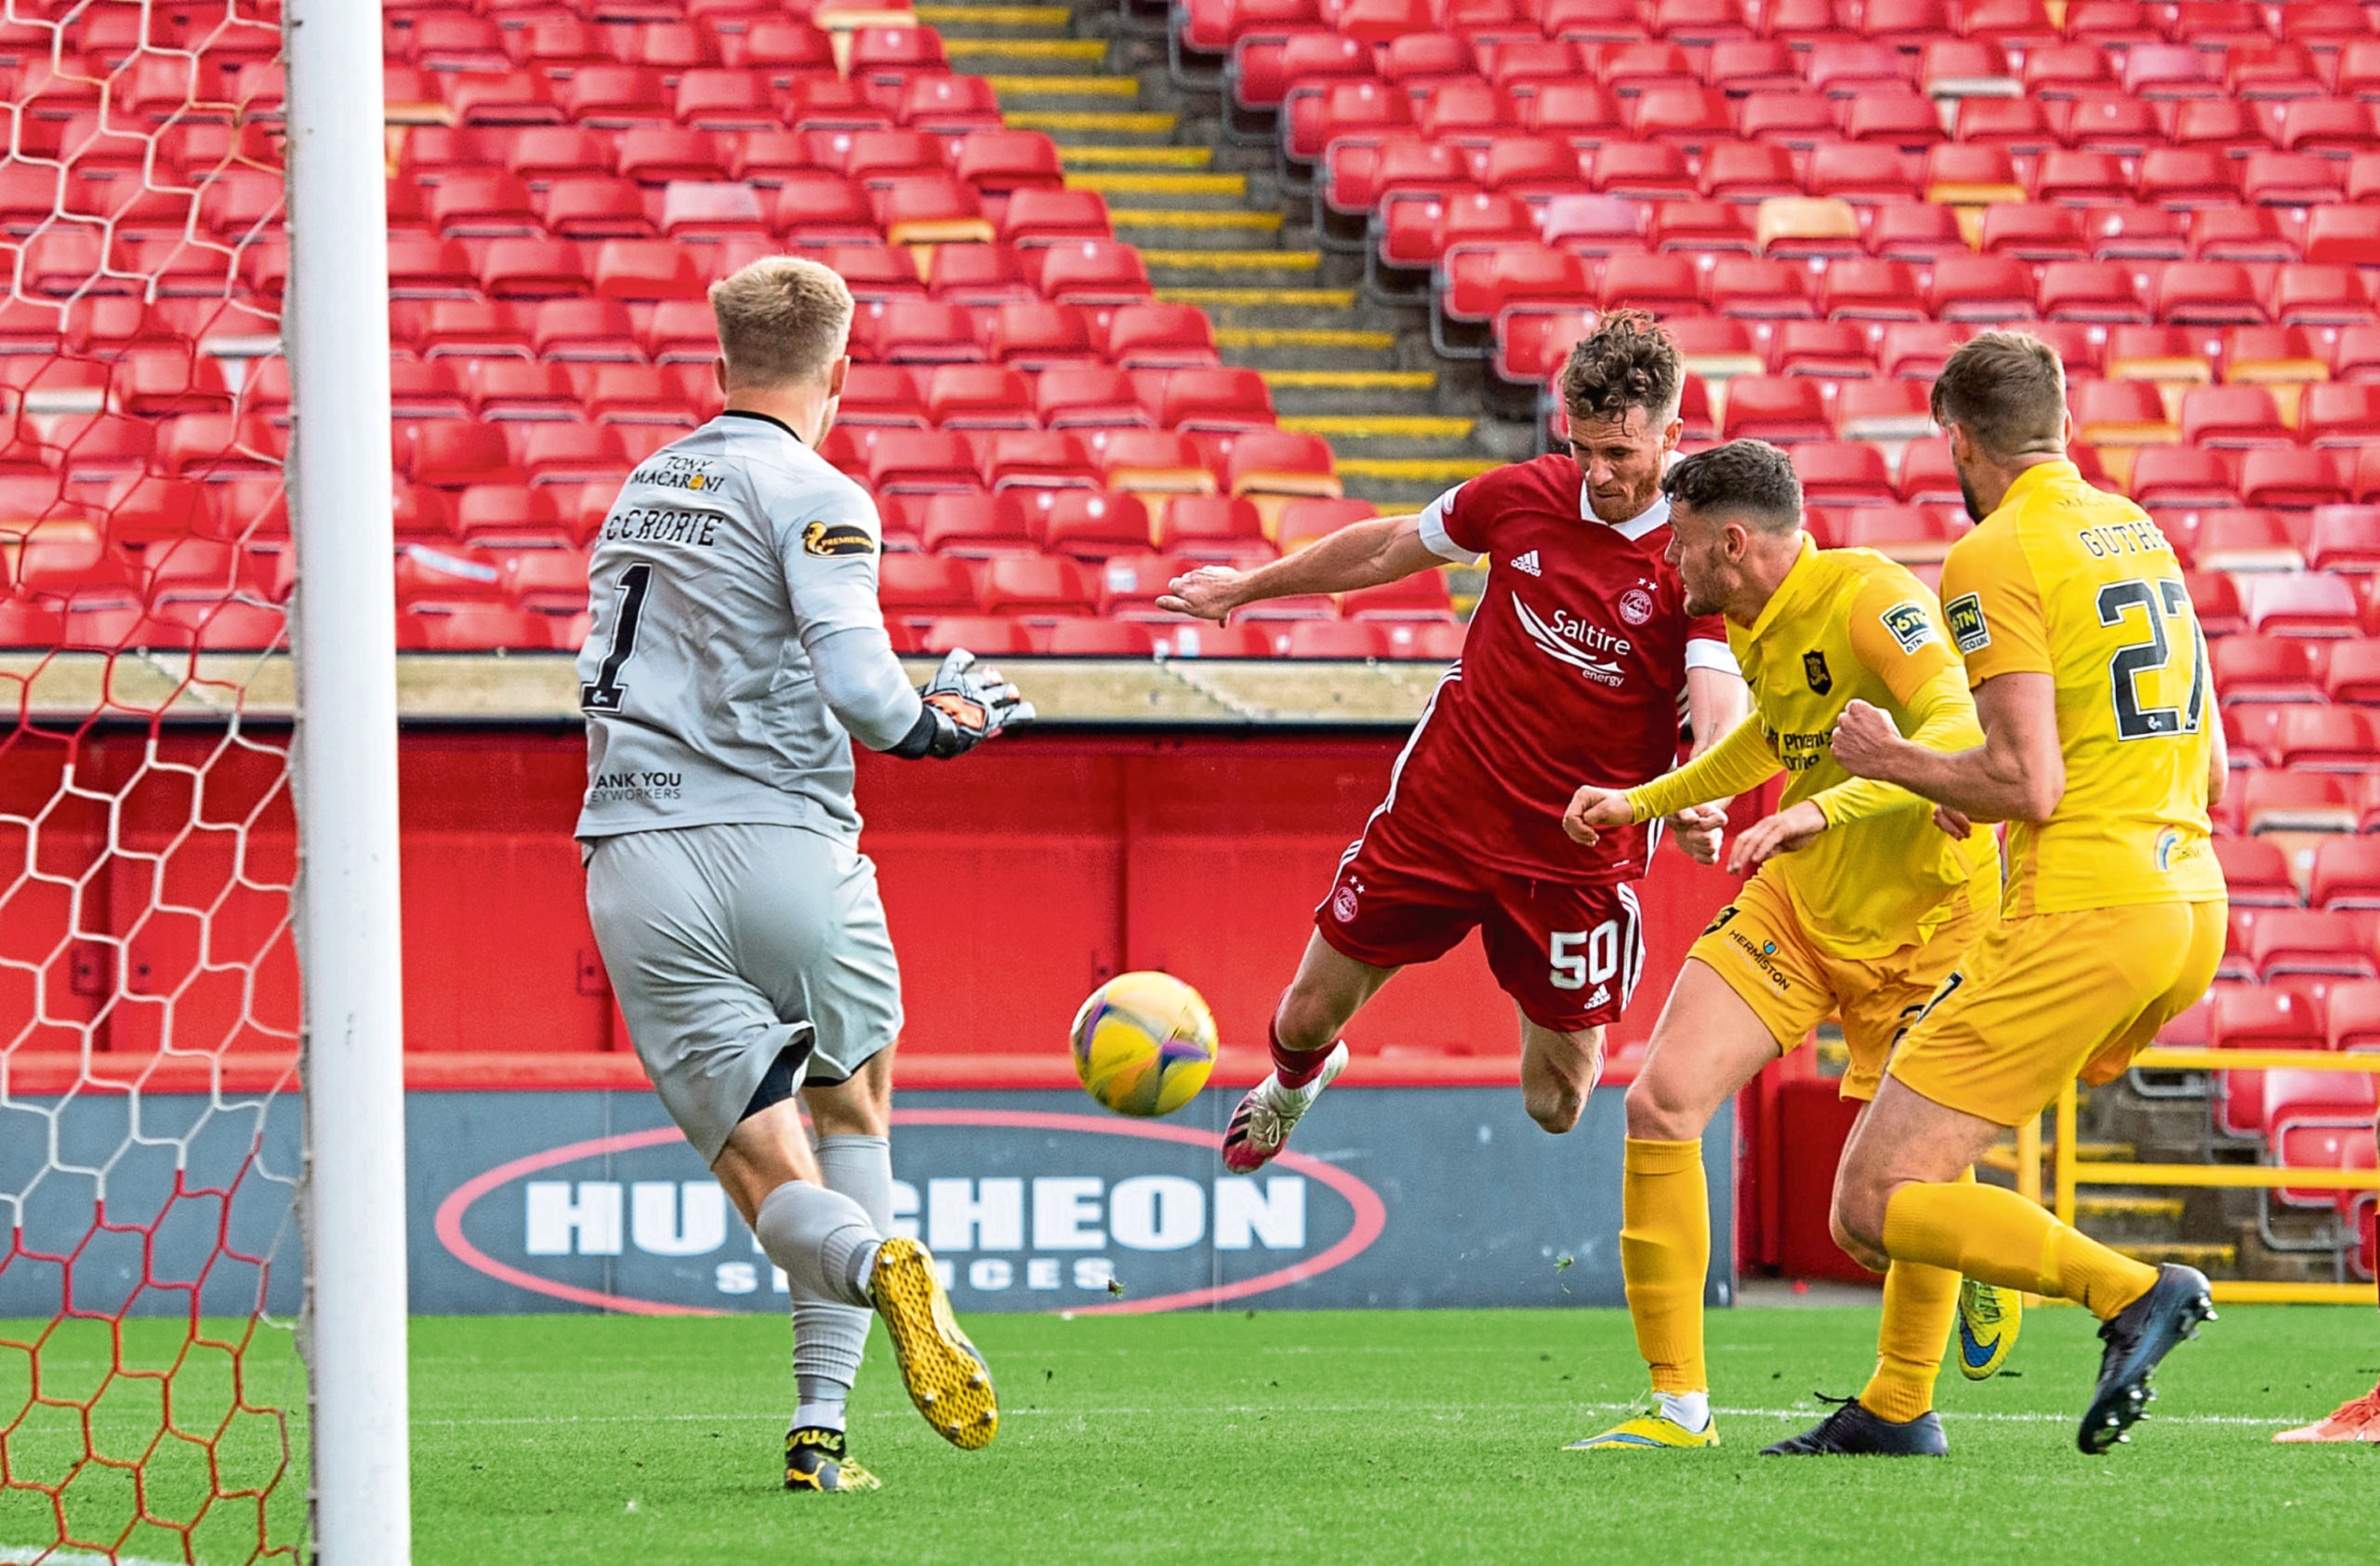 New loan signing Marley Watkins in action for Aberdeen against Livingston.